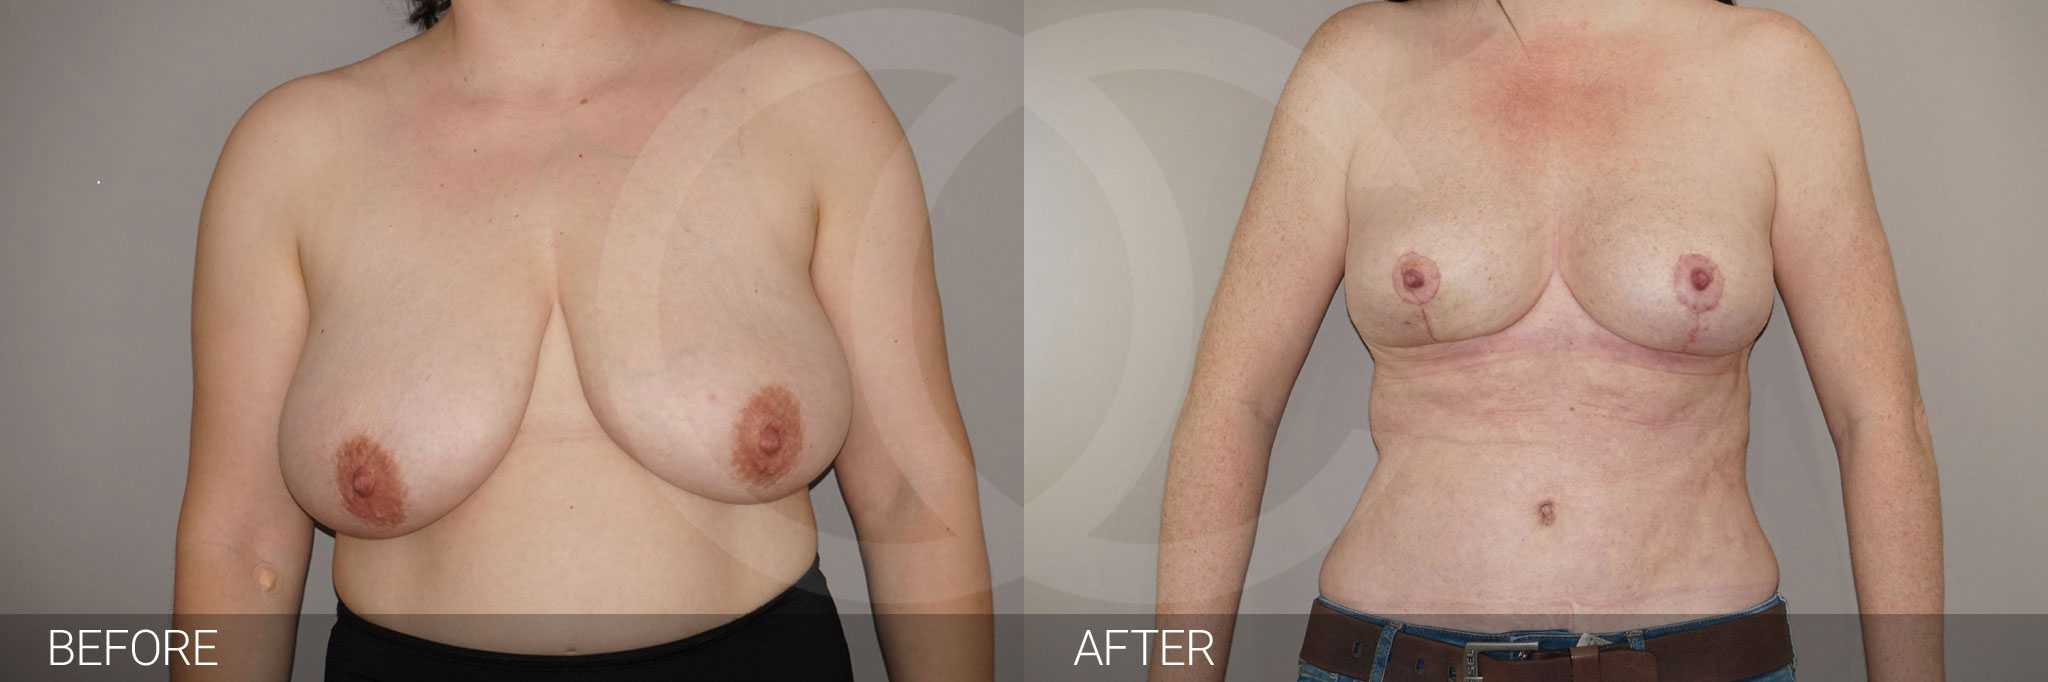 Breast Reduction Inverted-T-scar ante/post-op I